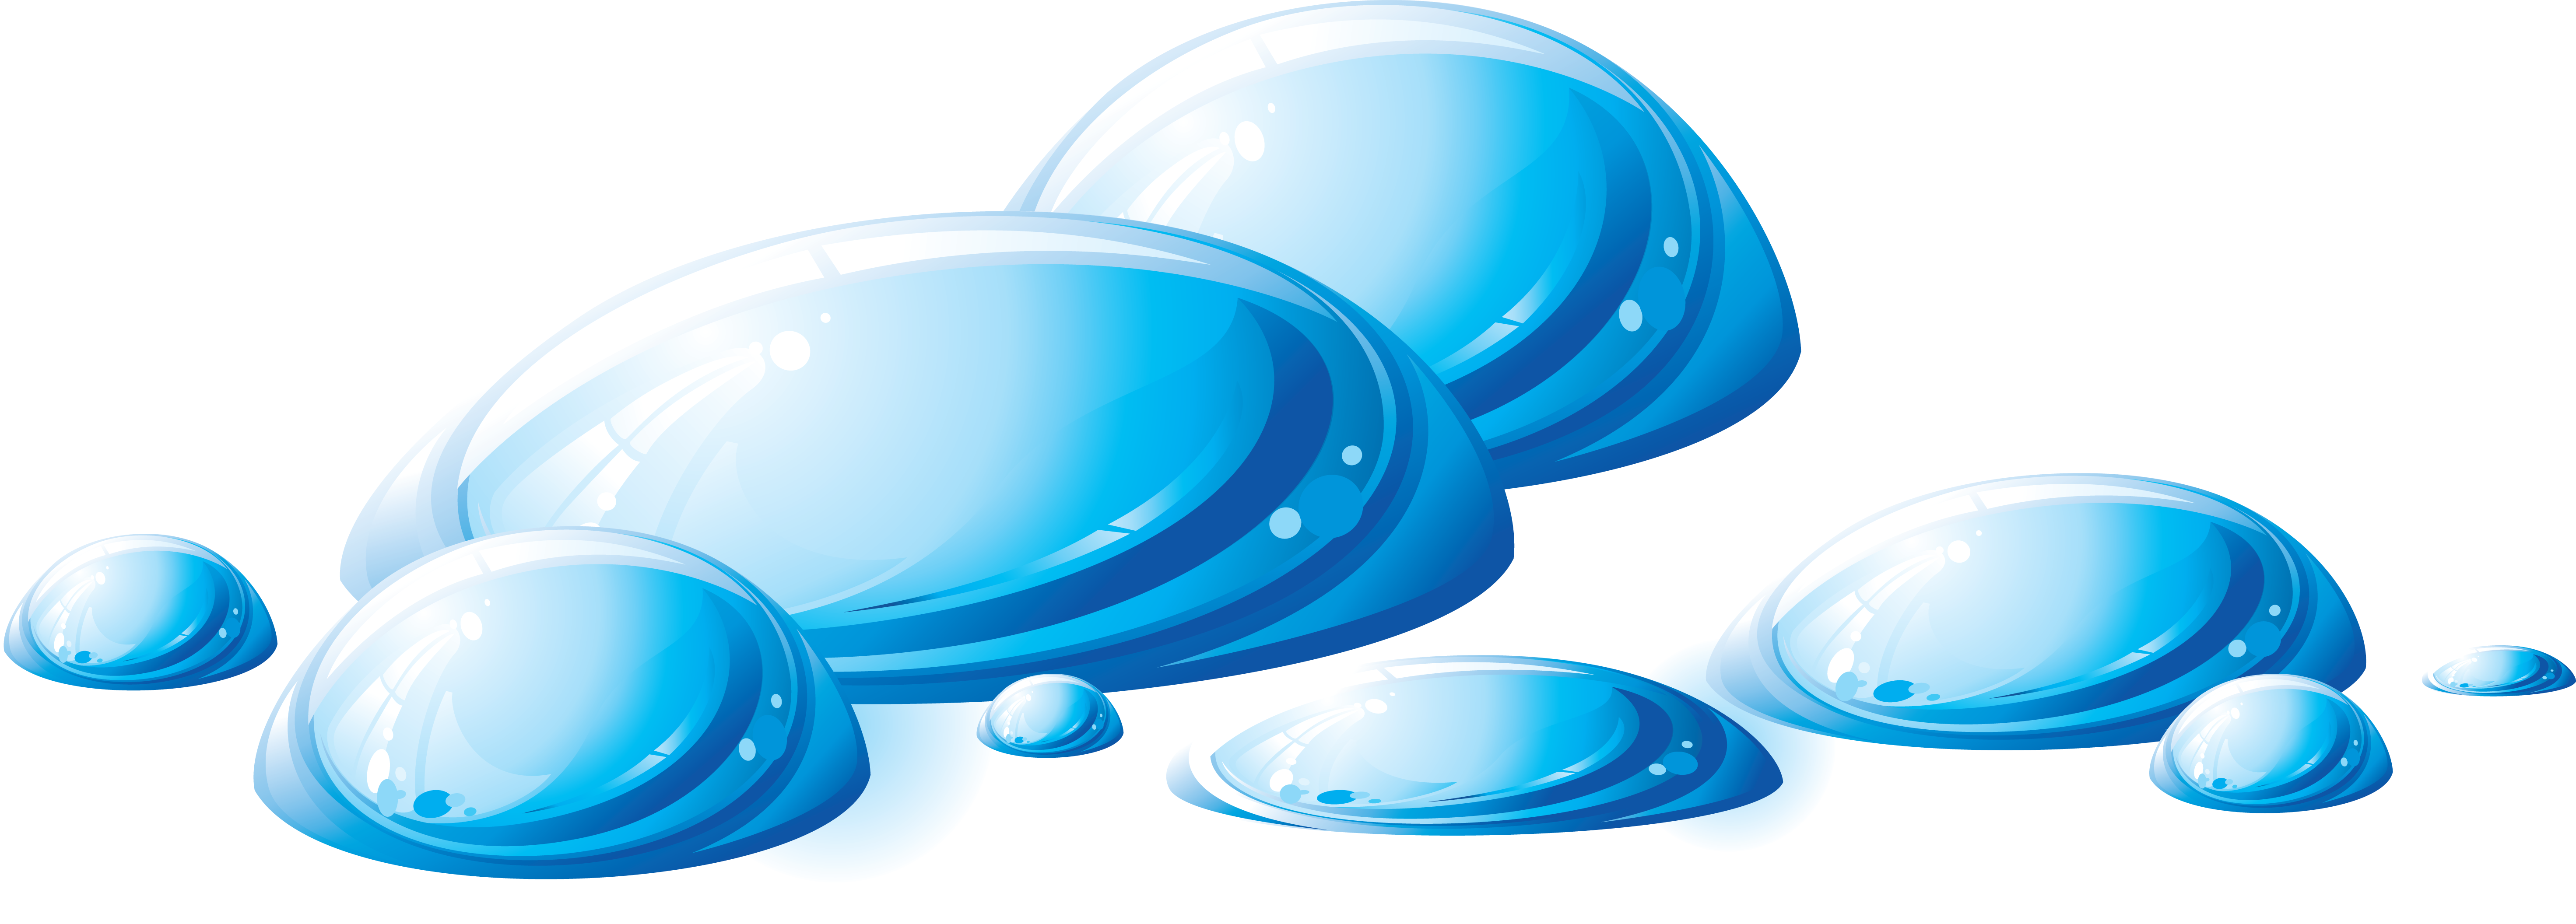 Waterdrop clipart transparent background Image PNG images free PNG